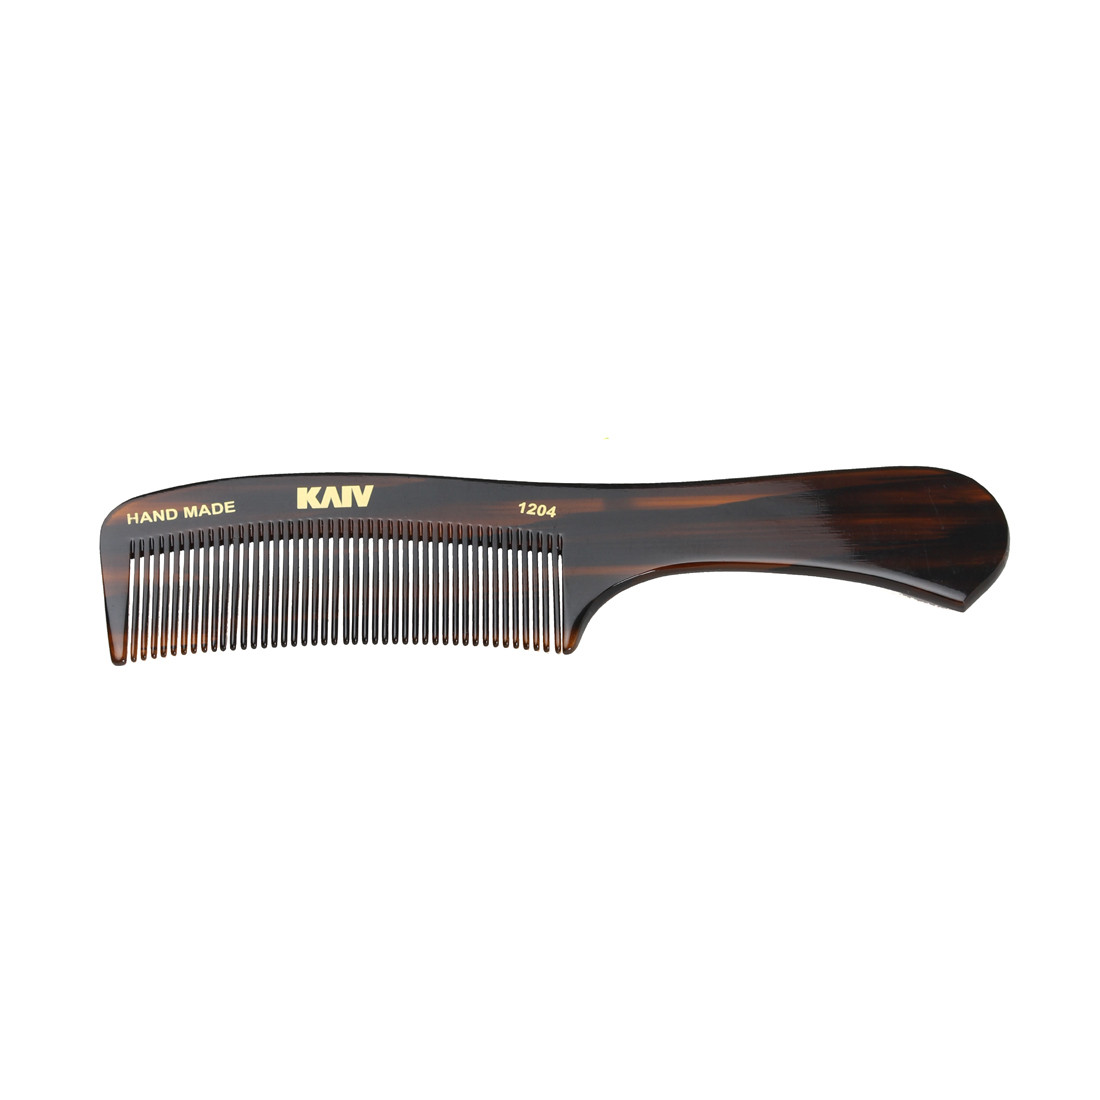 Kaiv Handmade Grooming Comb with Handle